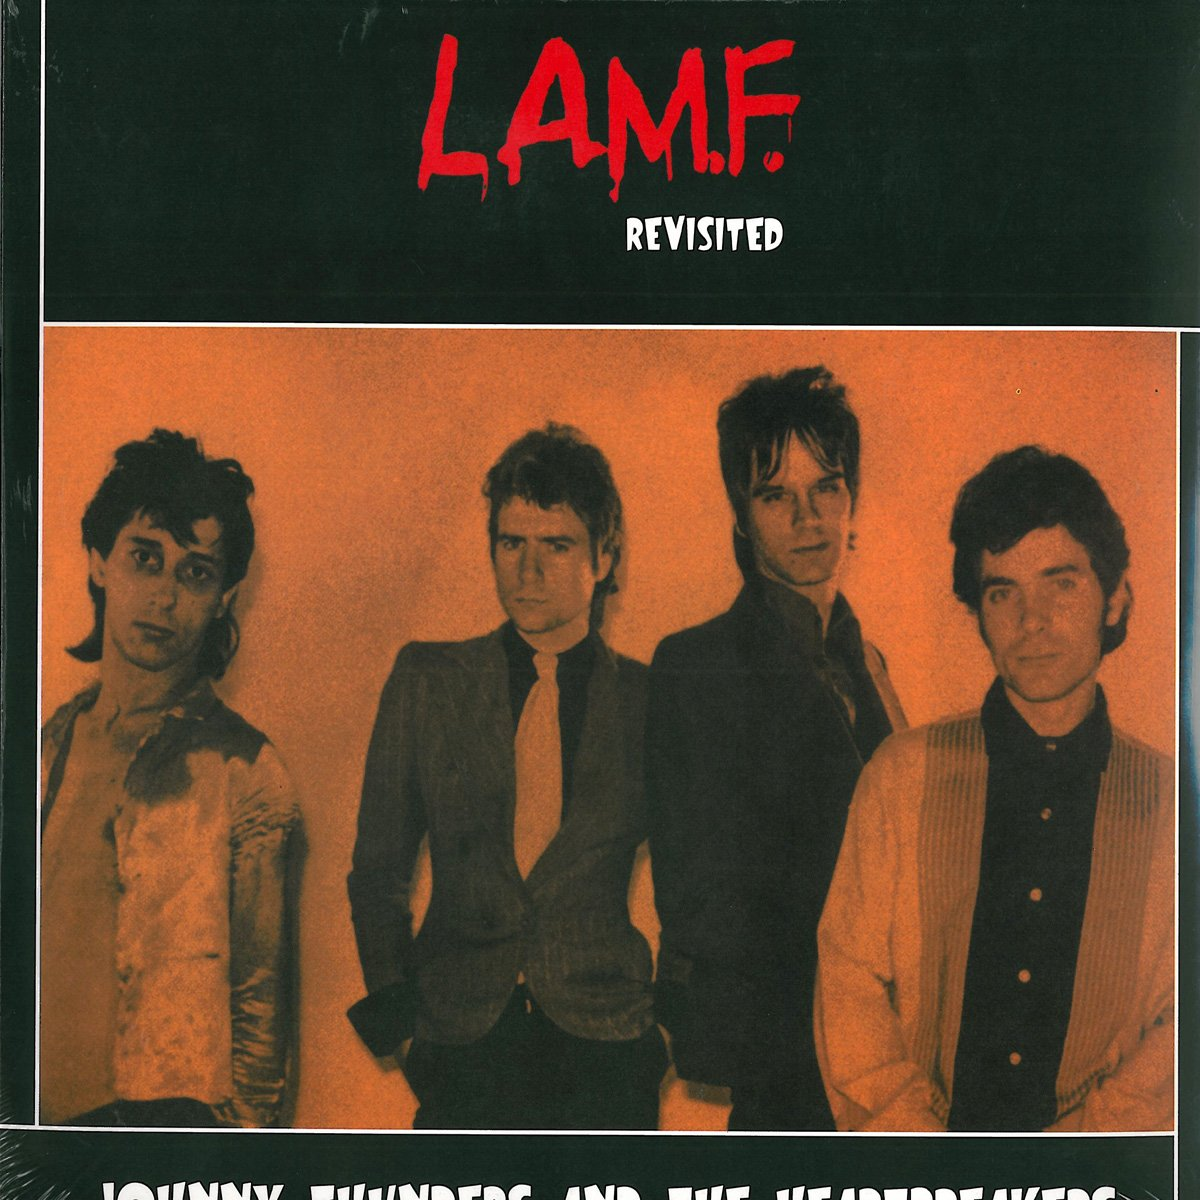 L.A.M.F. Revisited [Vinyl] by Earmark